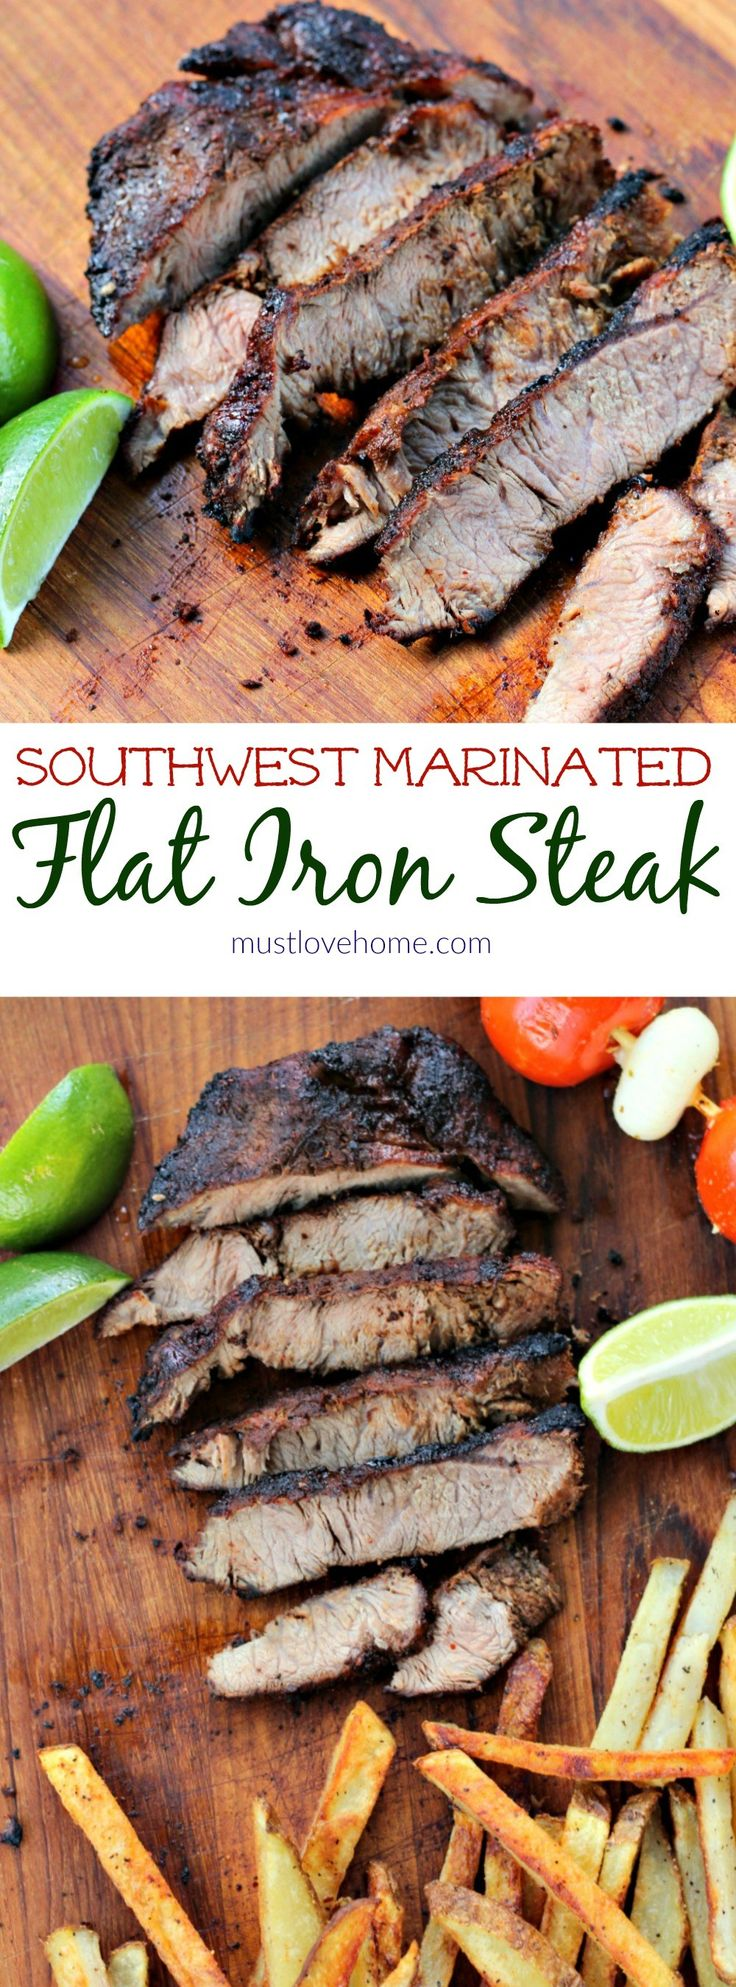 Marinated Southwest Flat Iron Steak - a melt in your mouth Flat Iron Steak that is grilled over high heat. A marinade including chili powder, brown sugar, and garlic is perfect for this cut of meat. Serve with an extra spritz of lime juice and fries!